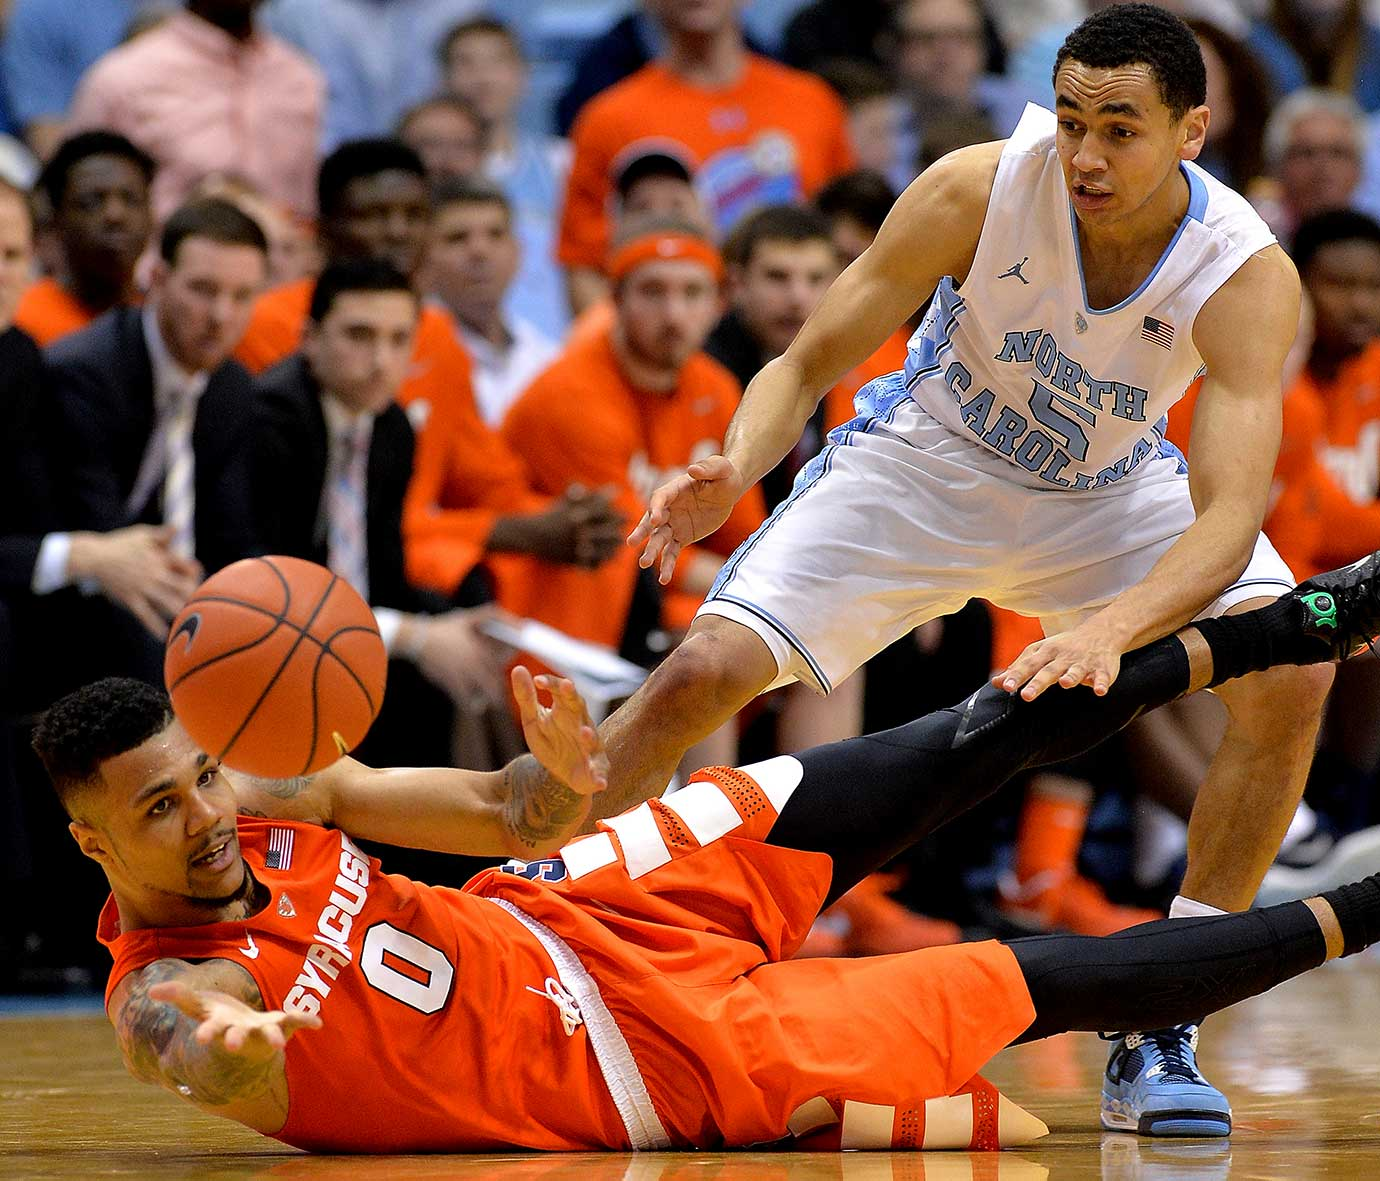 Michael Gbinije of the Syracuse Orange battles Marcus Paige of North Carolina for a loose ball.